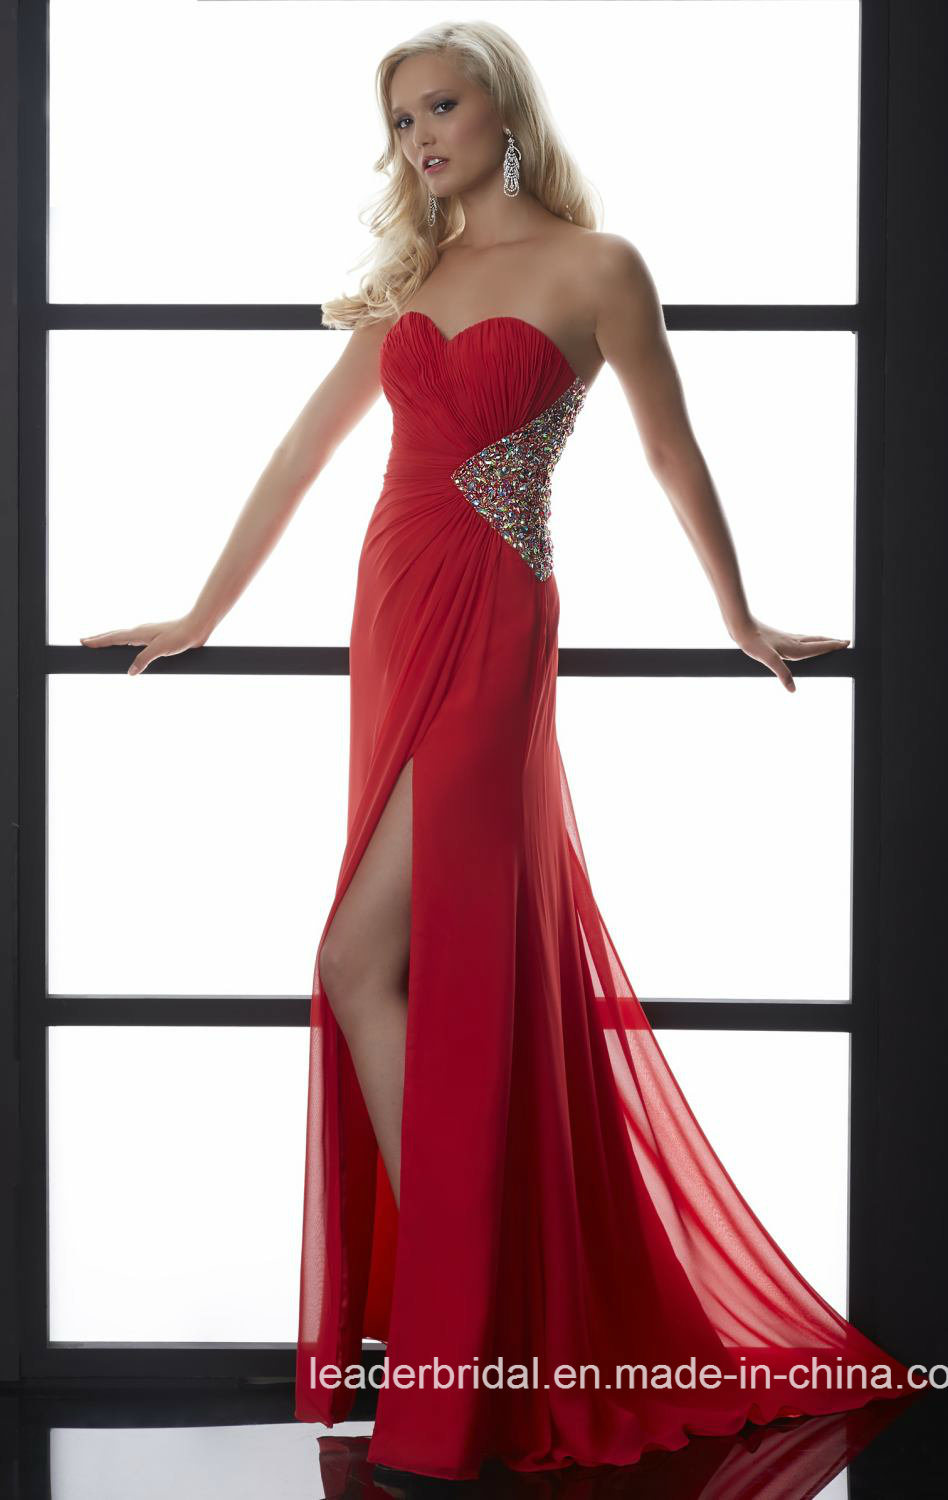 Jewelry Back Party Dress White Red Prom Evening Gowns Bz814